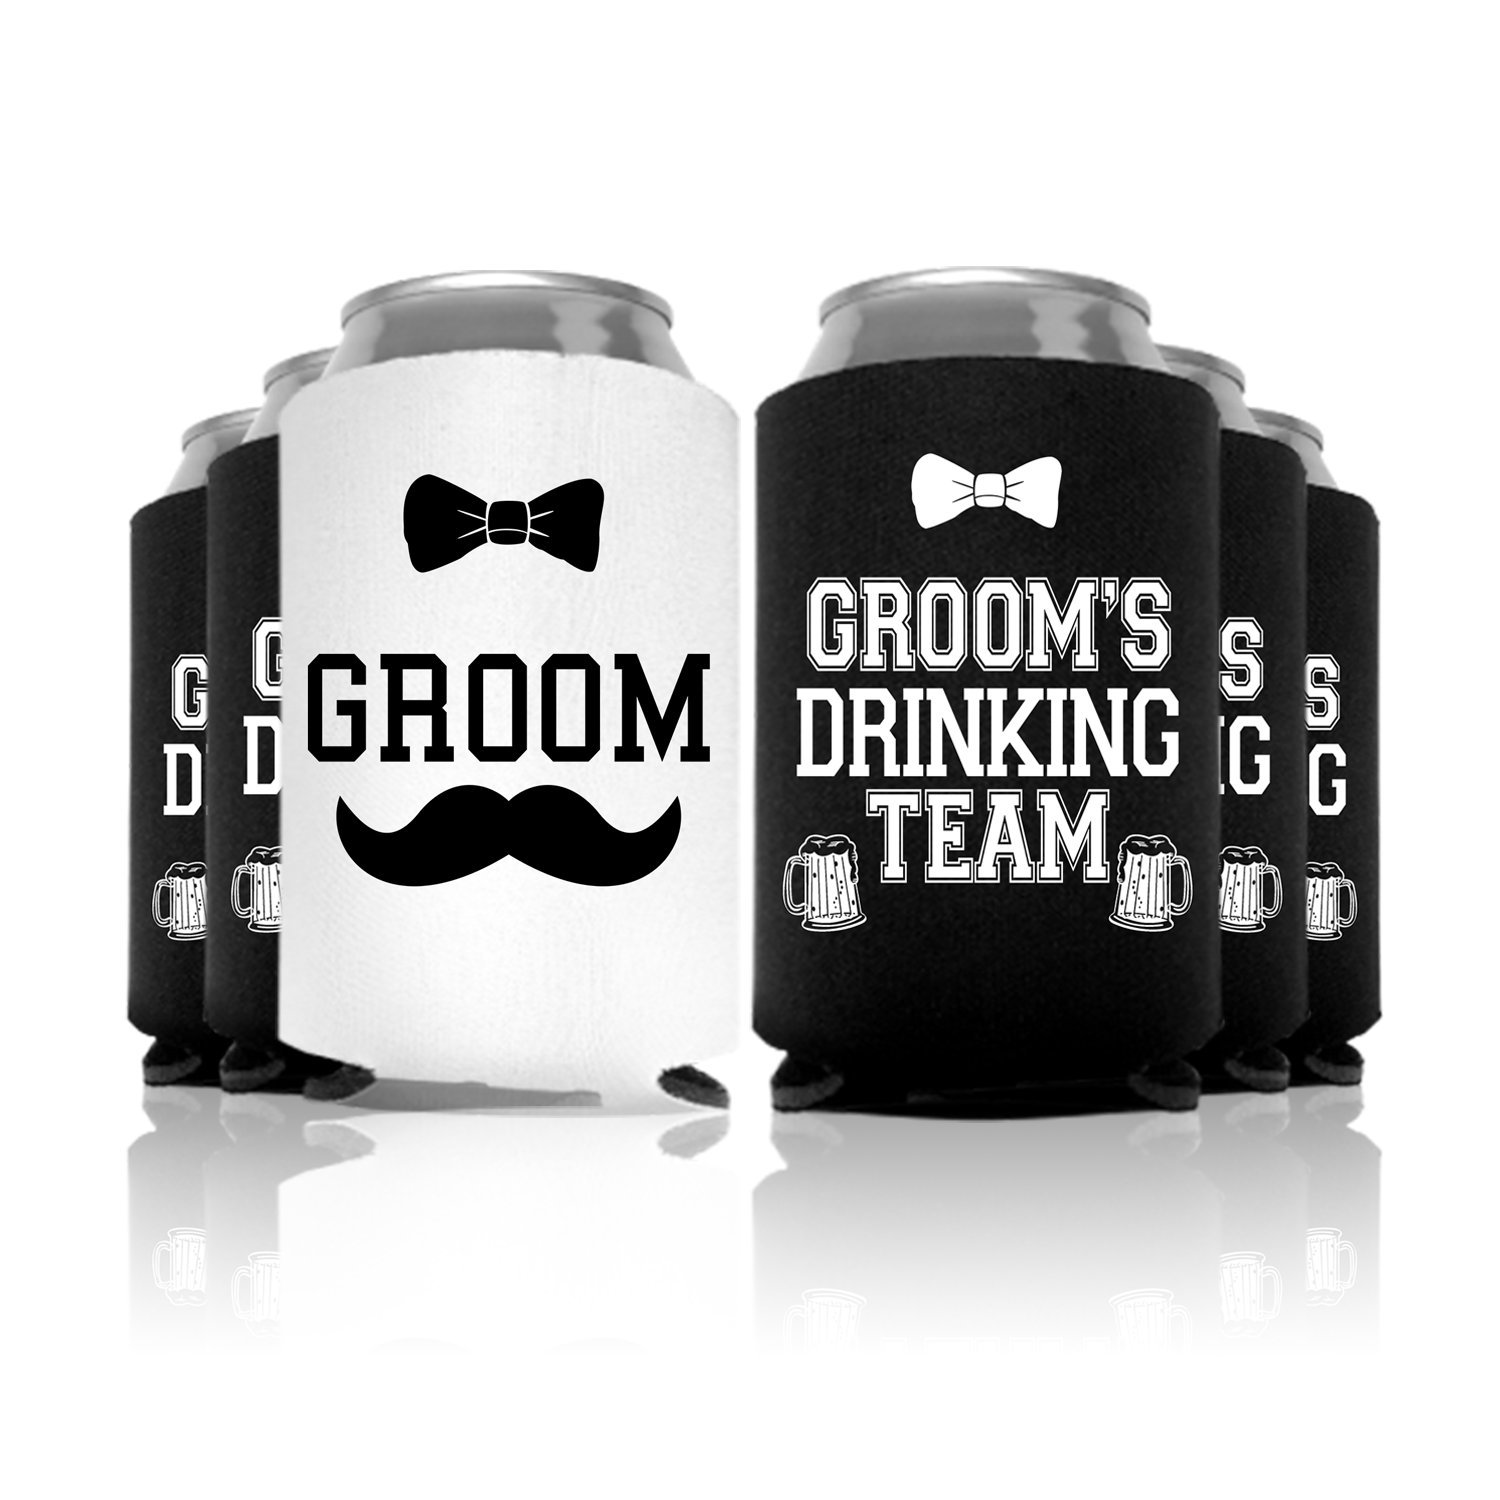 Groom's Wedding Special Can Coolers Bachelor Party Favor''Groom's Drinking Team'', Black, 6 Pc.